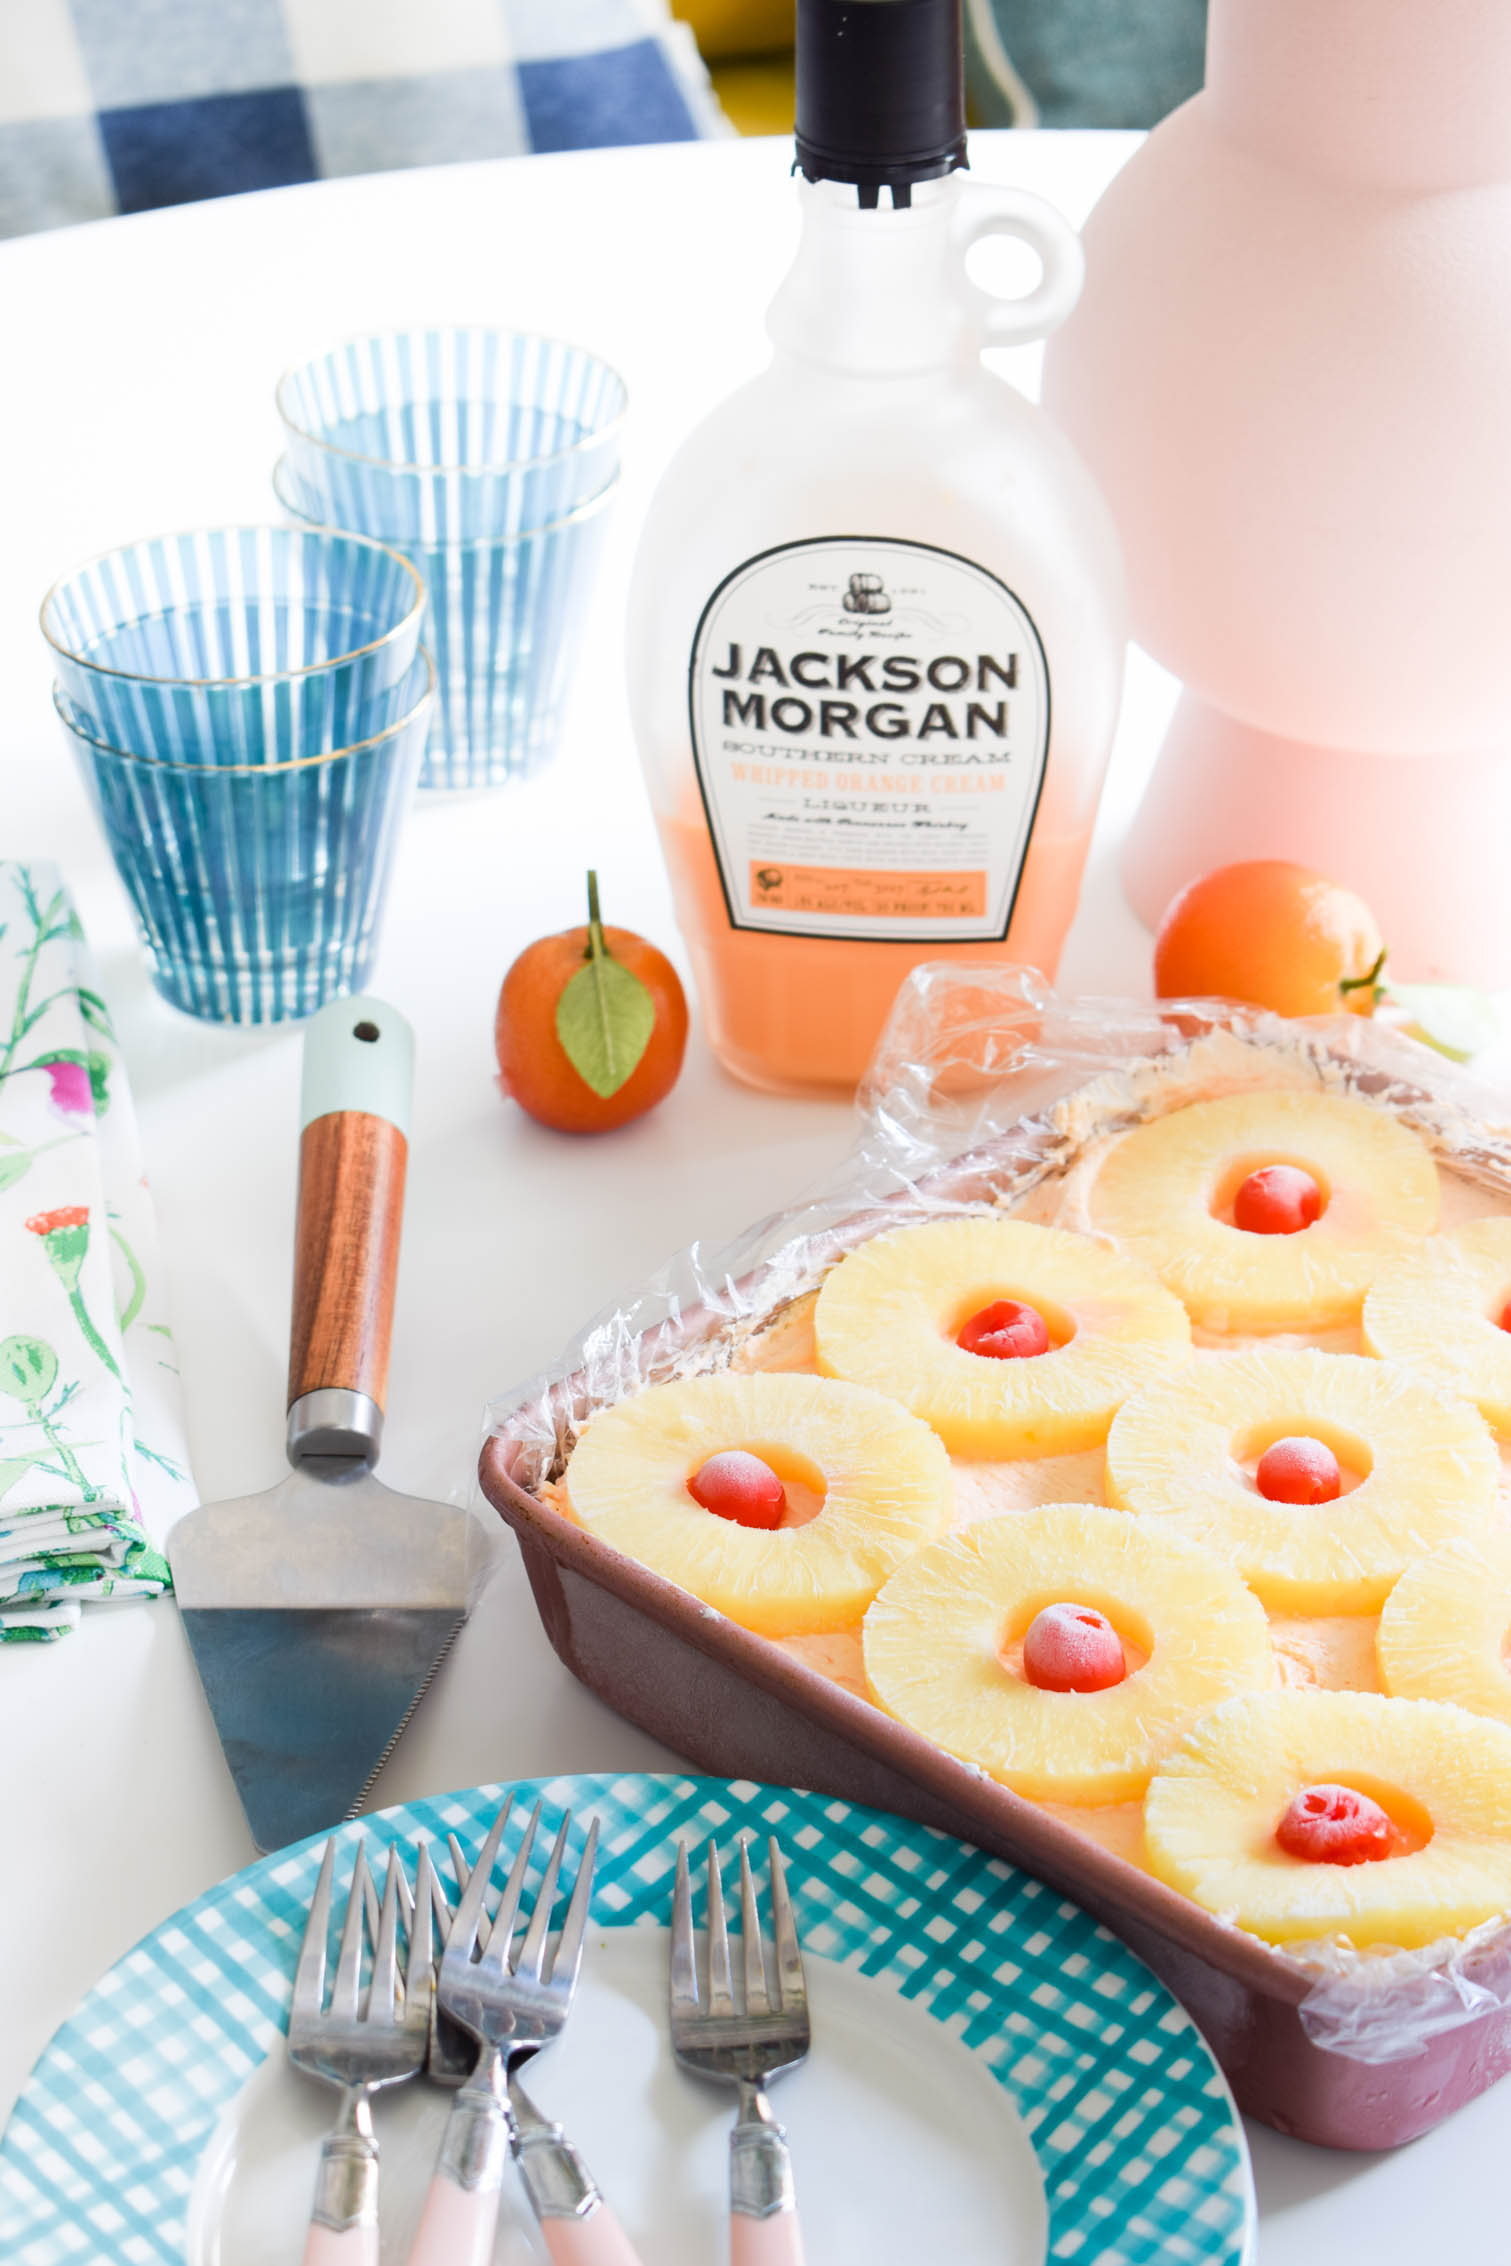 Whip-up some no-bake hawaiian punch cheesecake bars in time for dessert! All you need is some Jackson Morgan in your fave flavours.